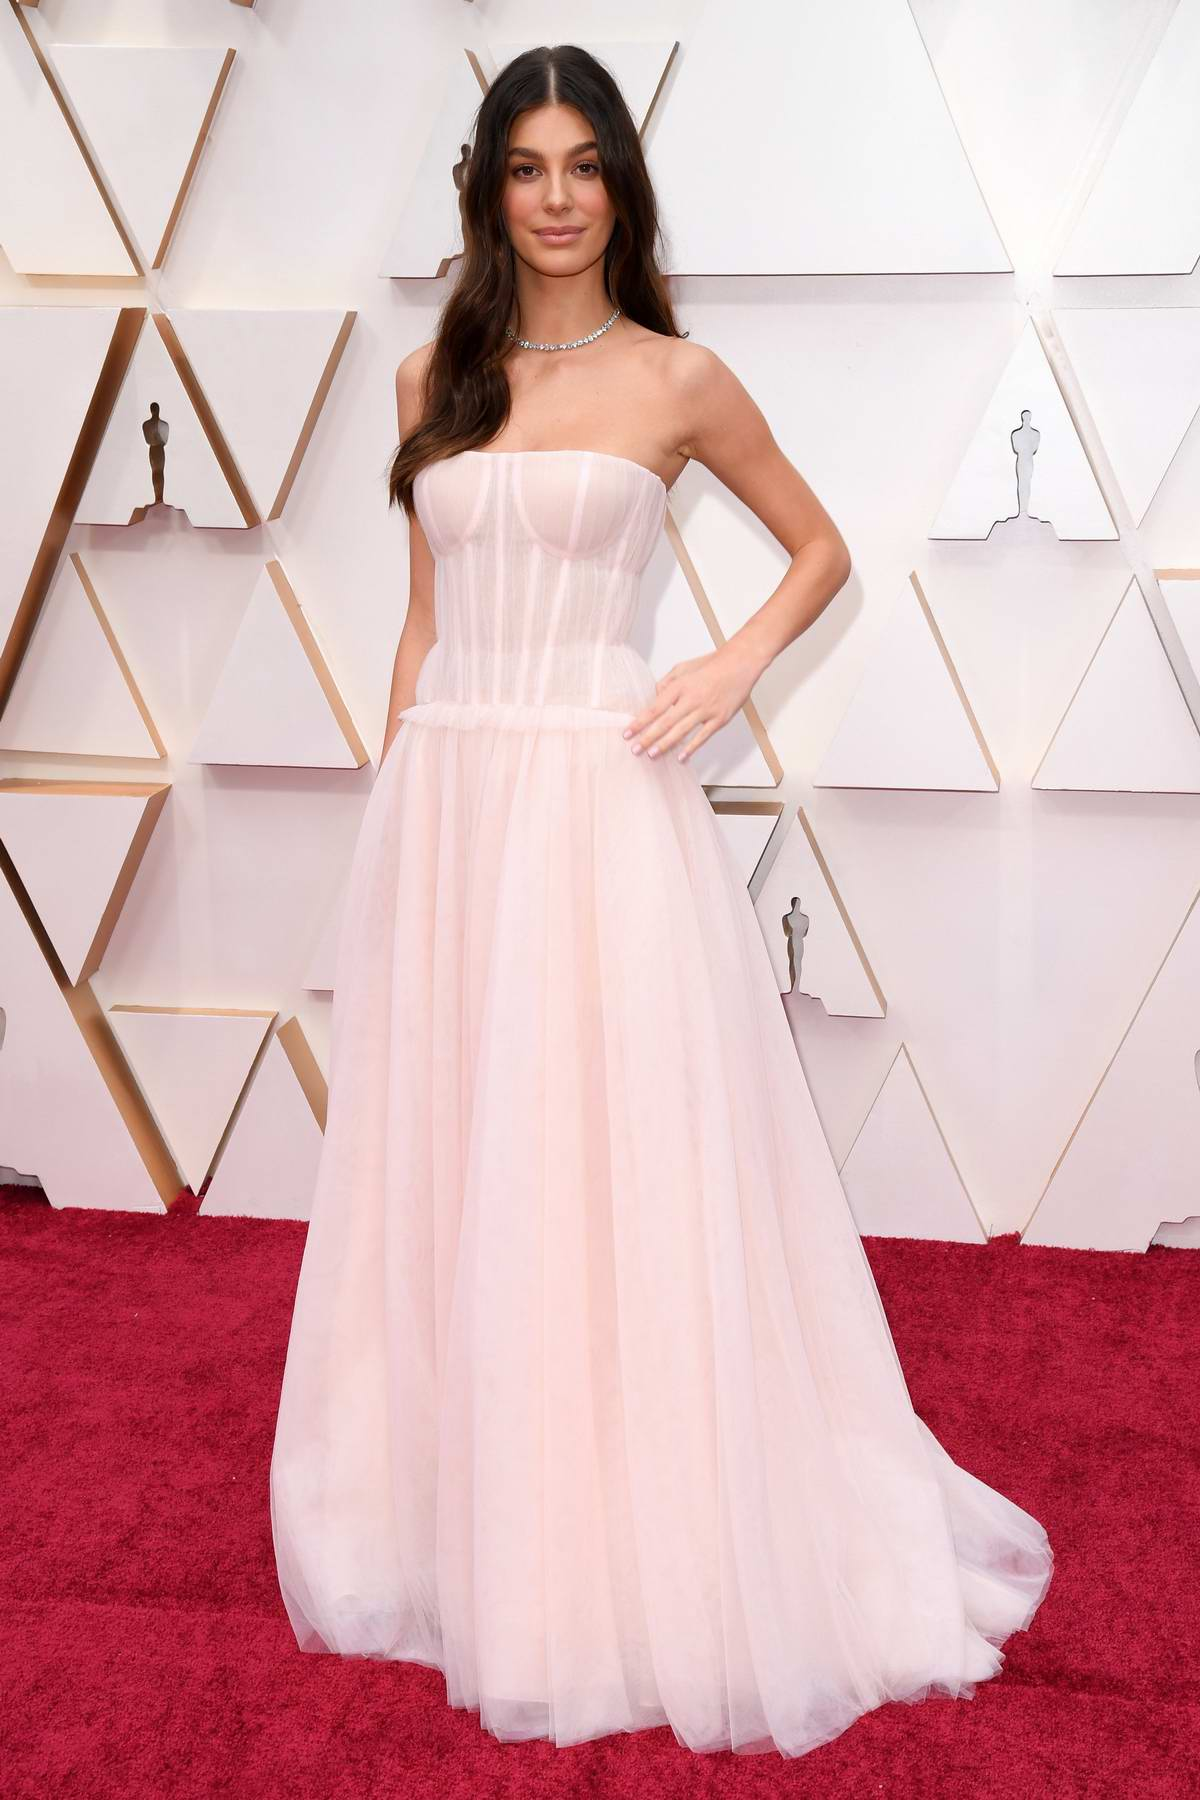 Camila Morrone attends the 92nd Annual Academy Awards at Dolby Theatre in Los Angeles